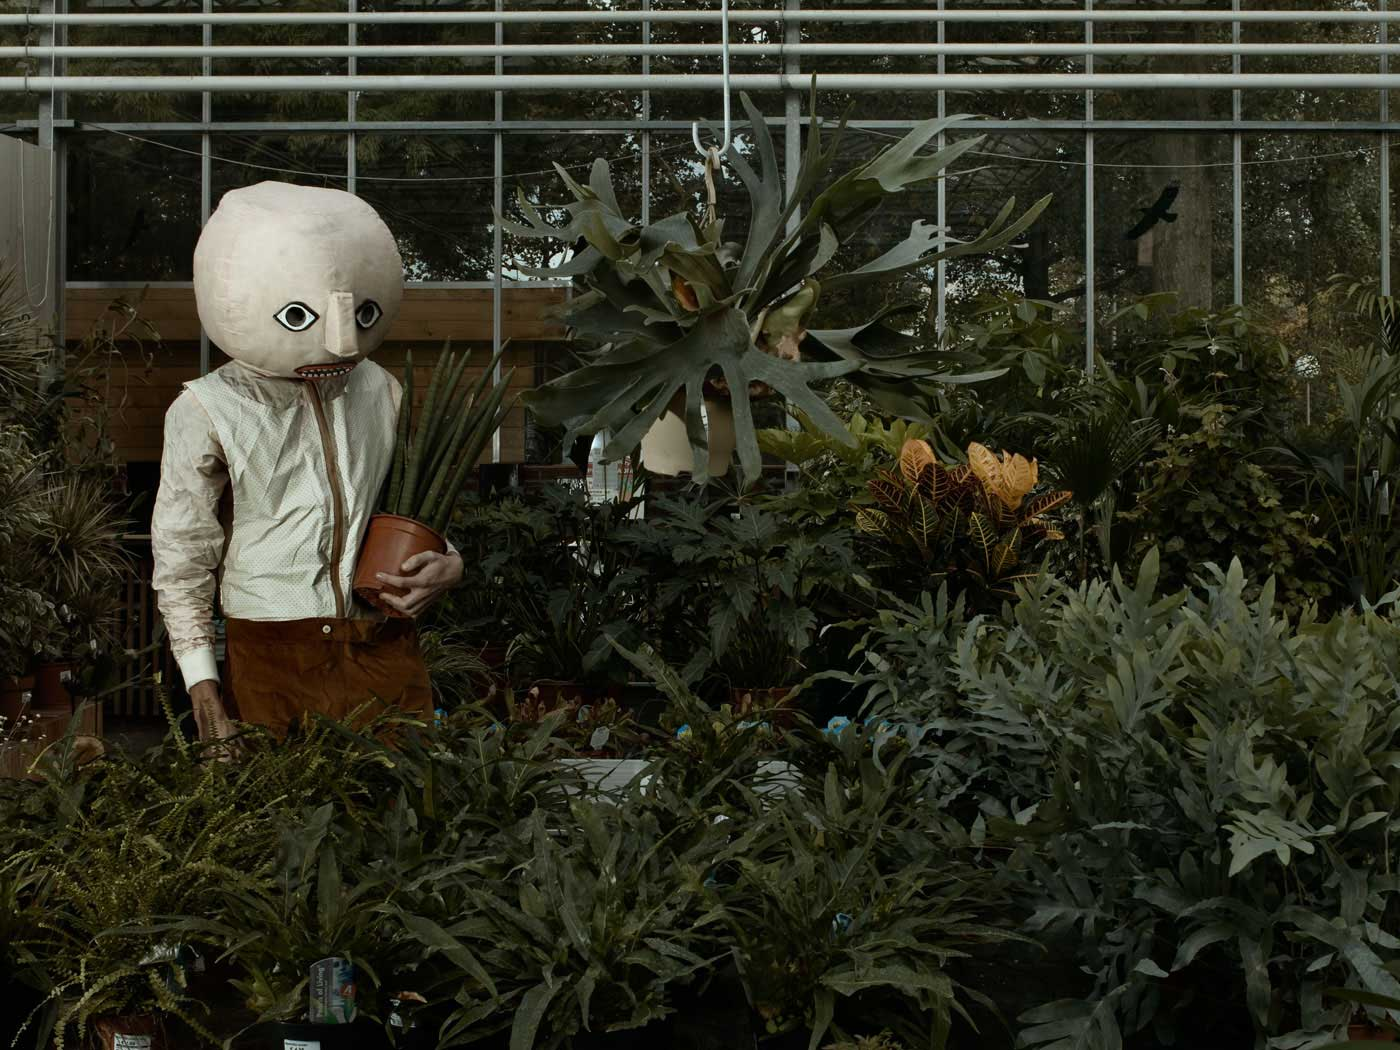 Garden Centre, The Second Self Laboratory Jan Pieter Kaptein | Yellowtrace